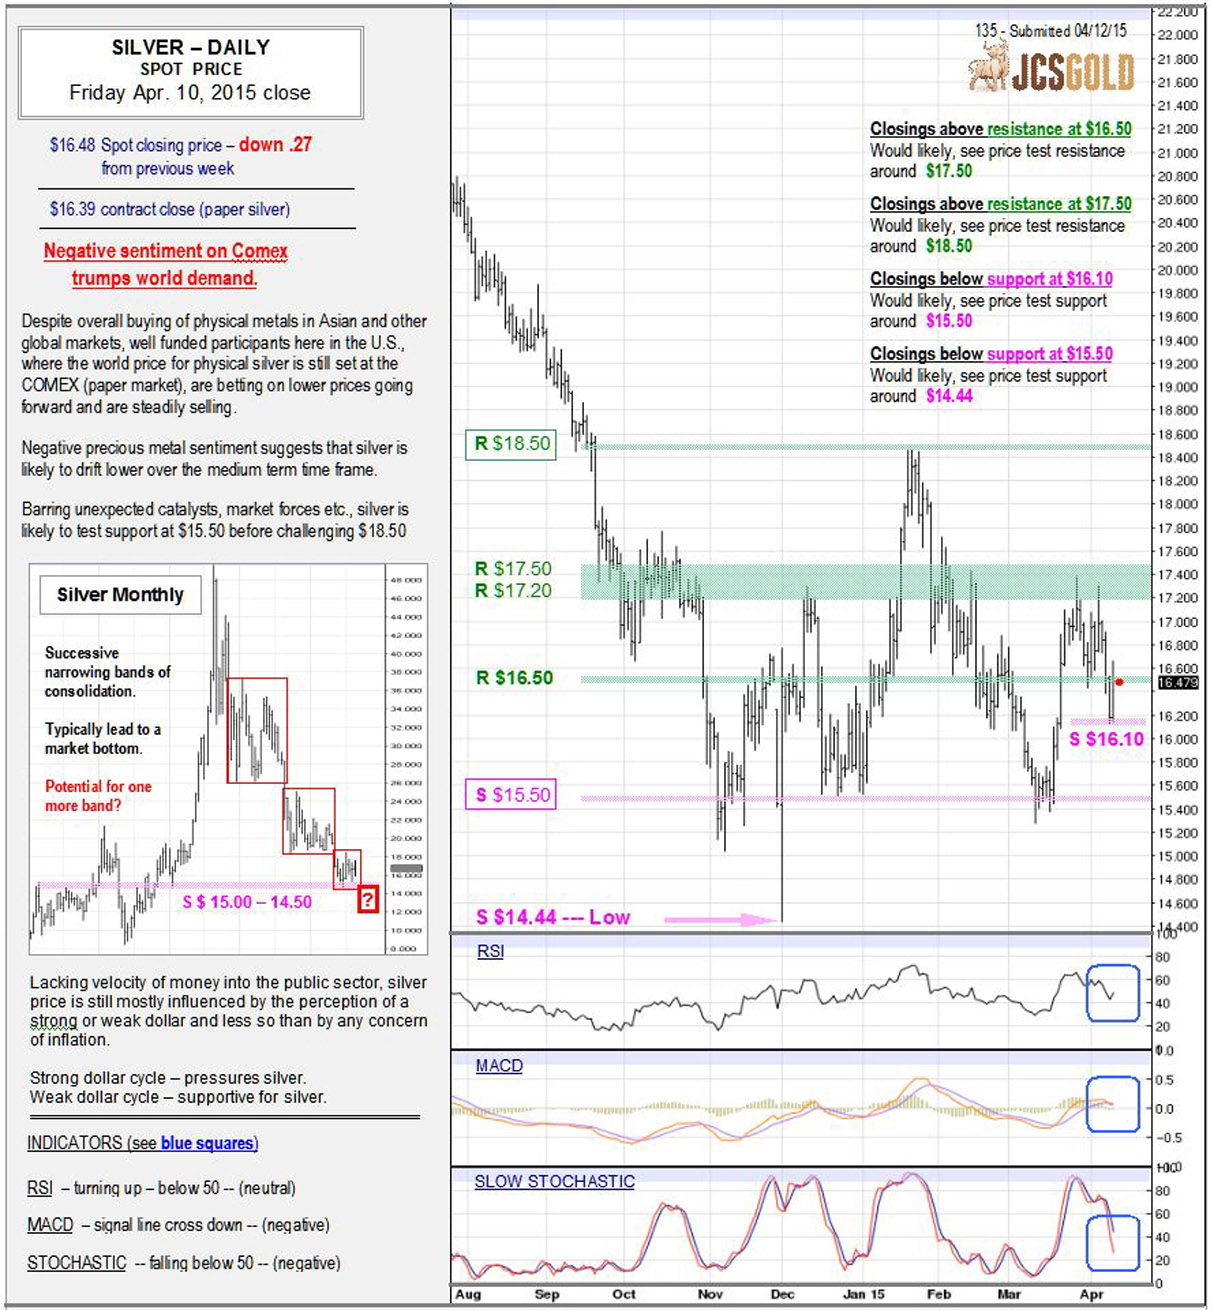 Apr 10, 2015 chart & commentary